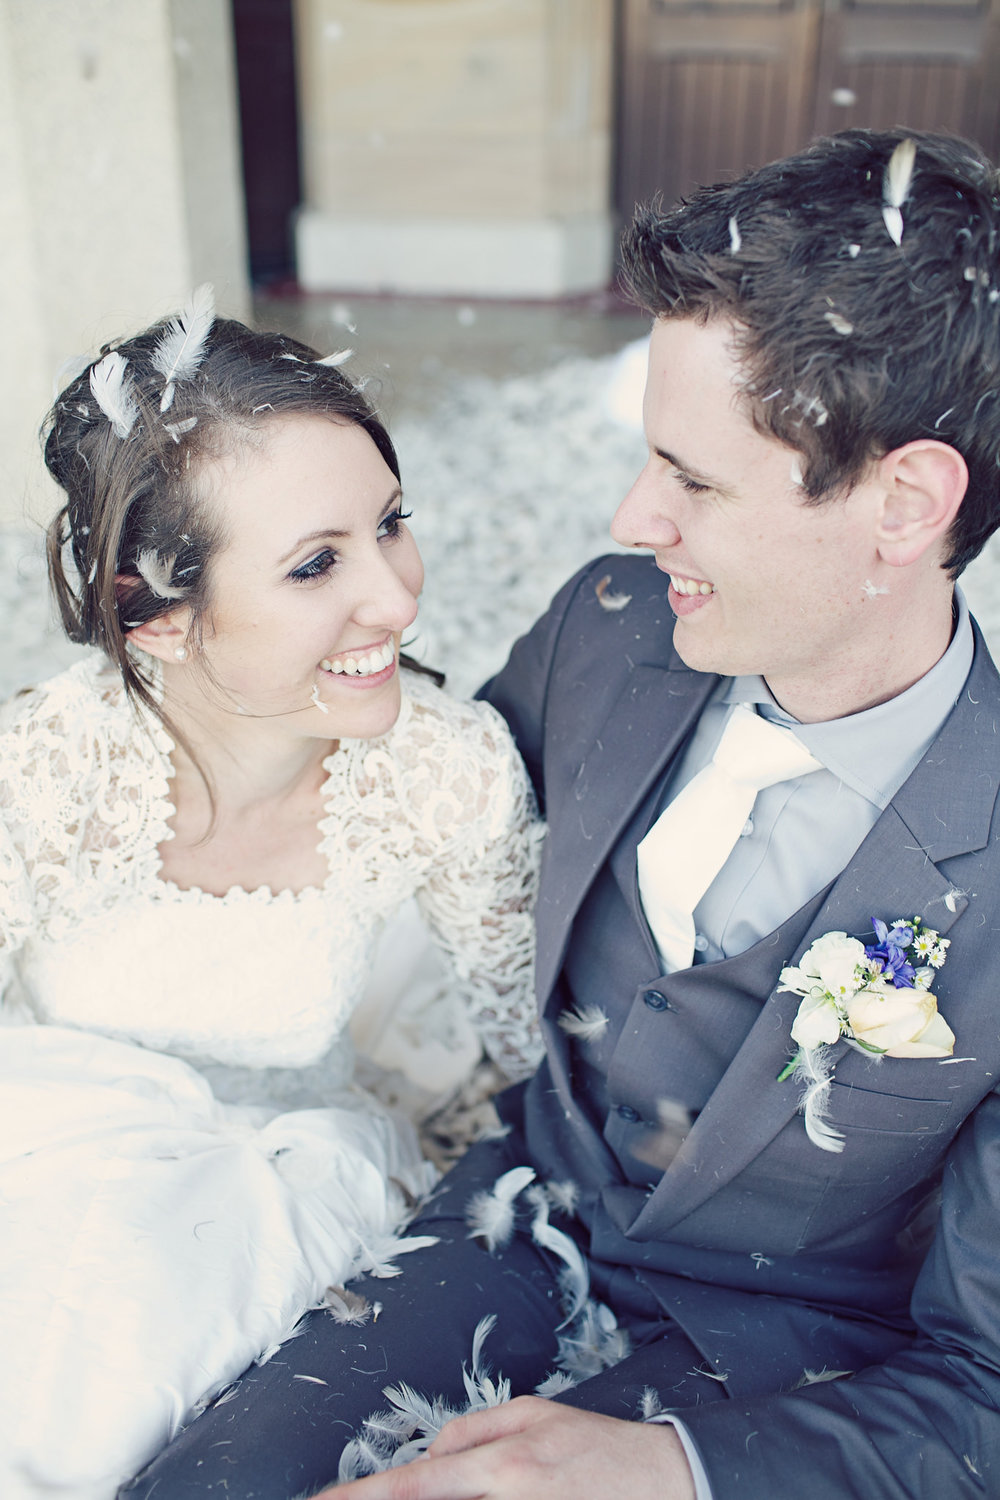 Makeup by Marley Hammond. Photography by Lady Jayde Photography. This one is from our wedding day.